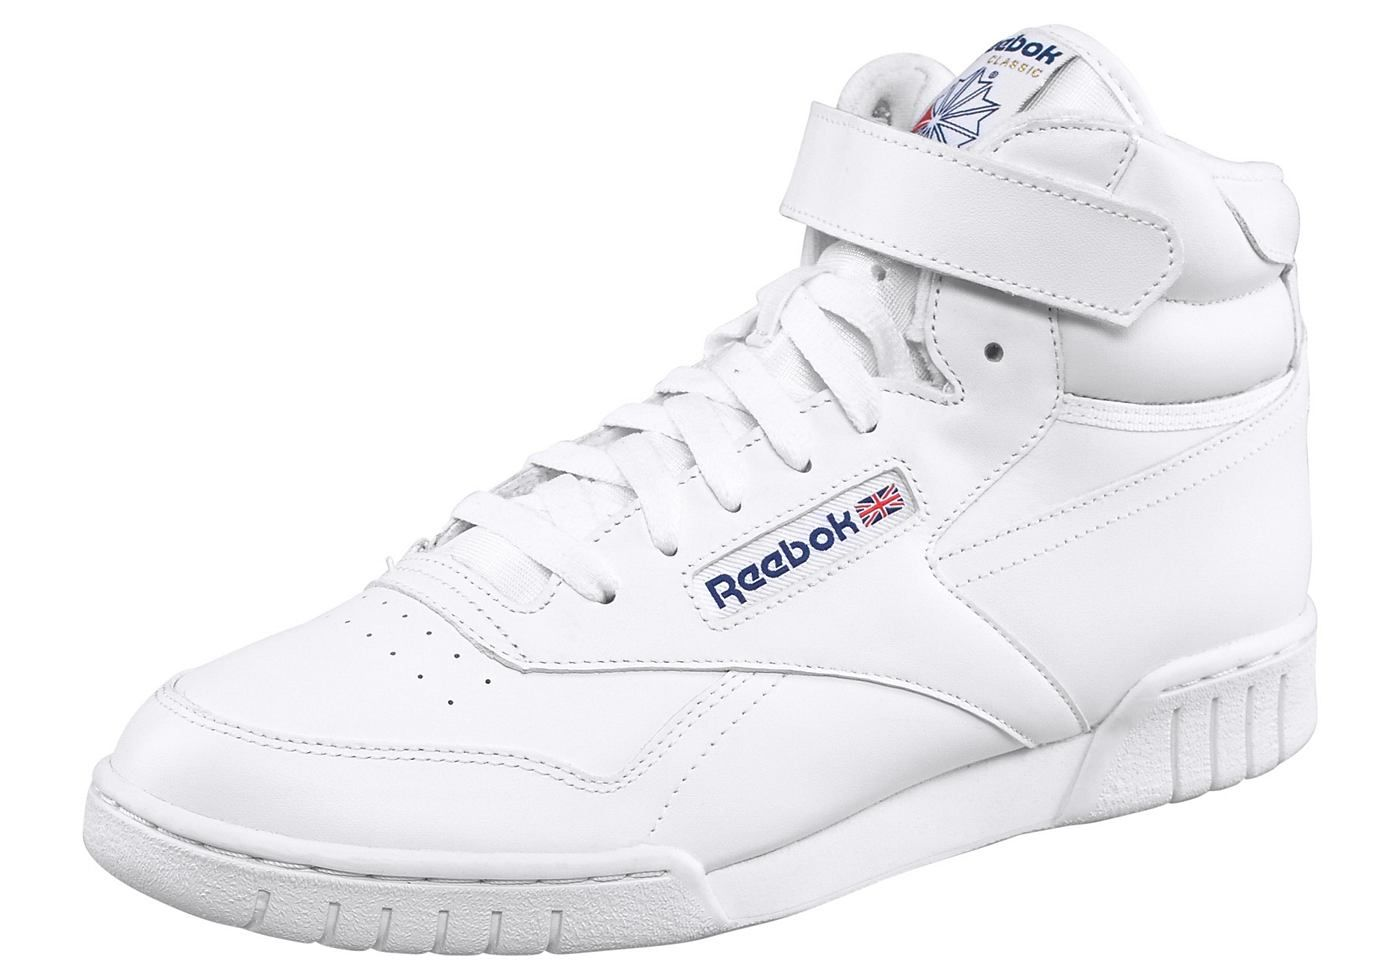 Reebok Classic »Ex O Fit Hi« Sneaker | Shoes | Sneakers